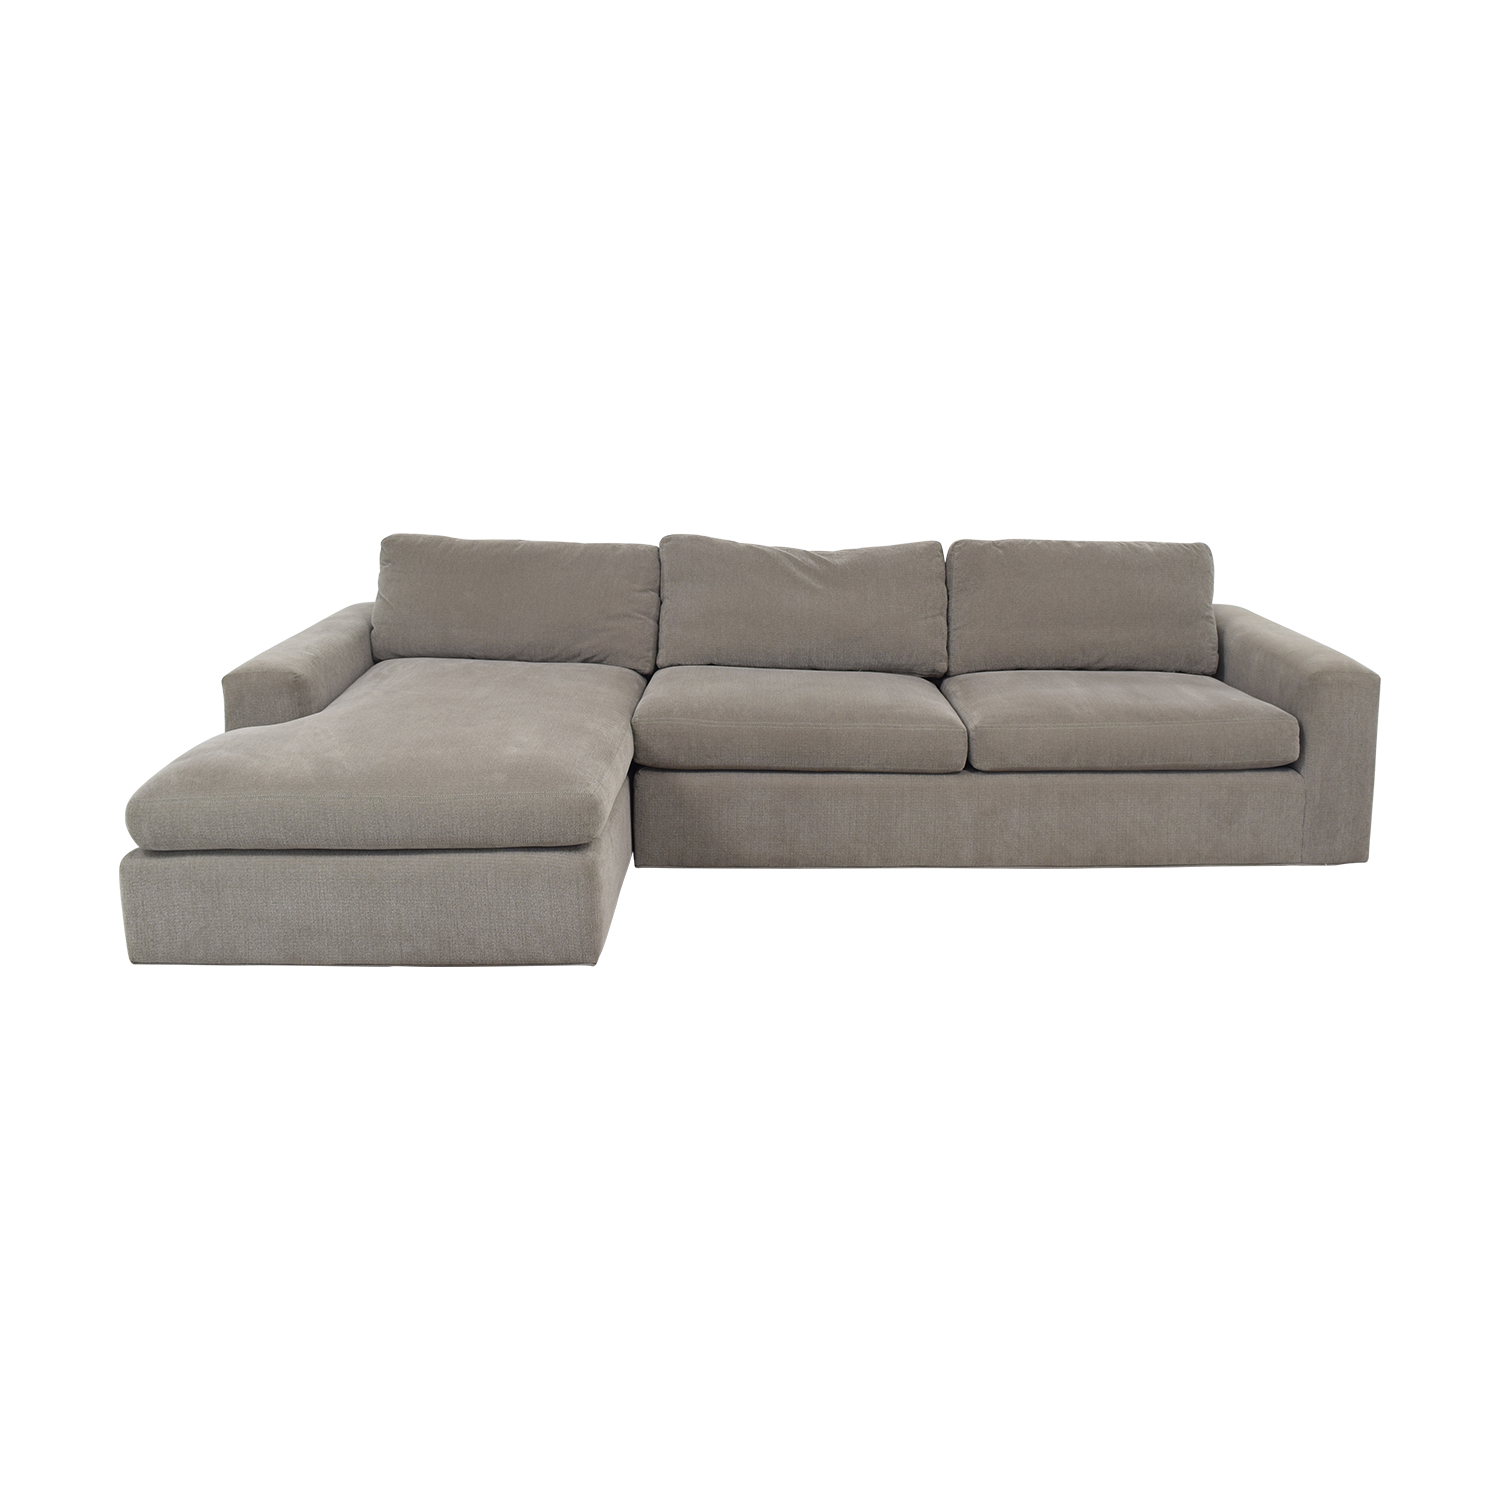 buy Room & Board Chaise Sectional Sofa Room & Board